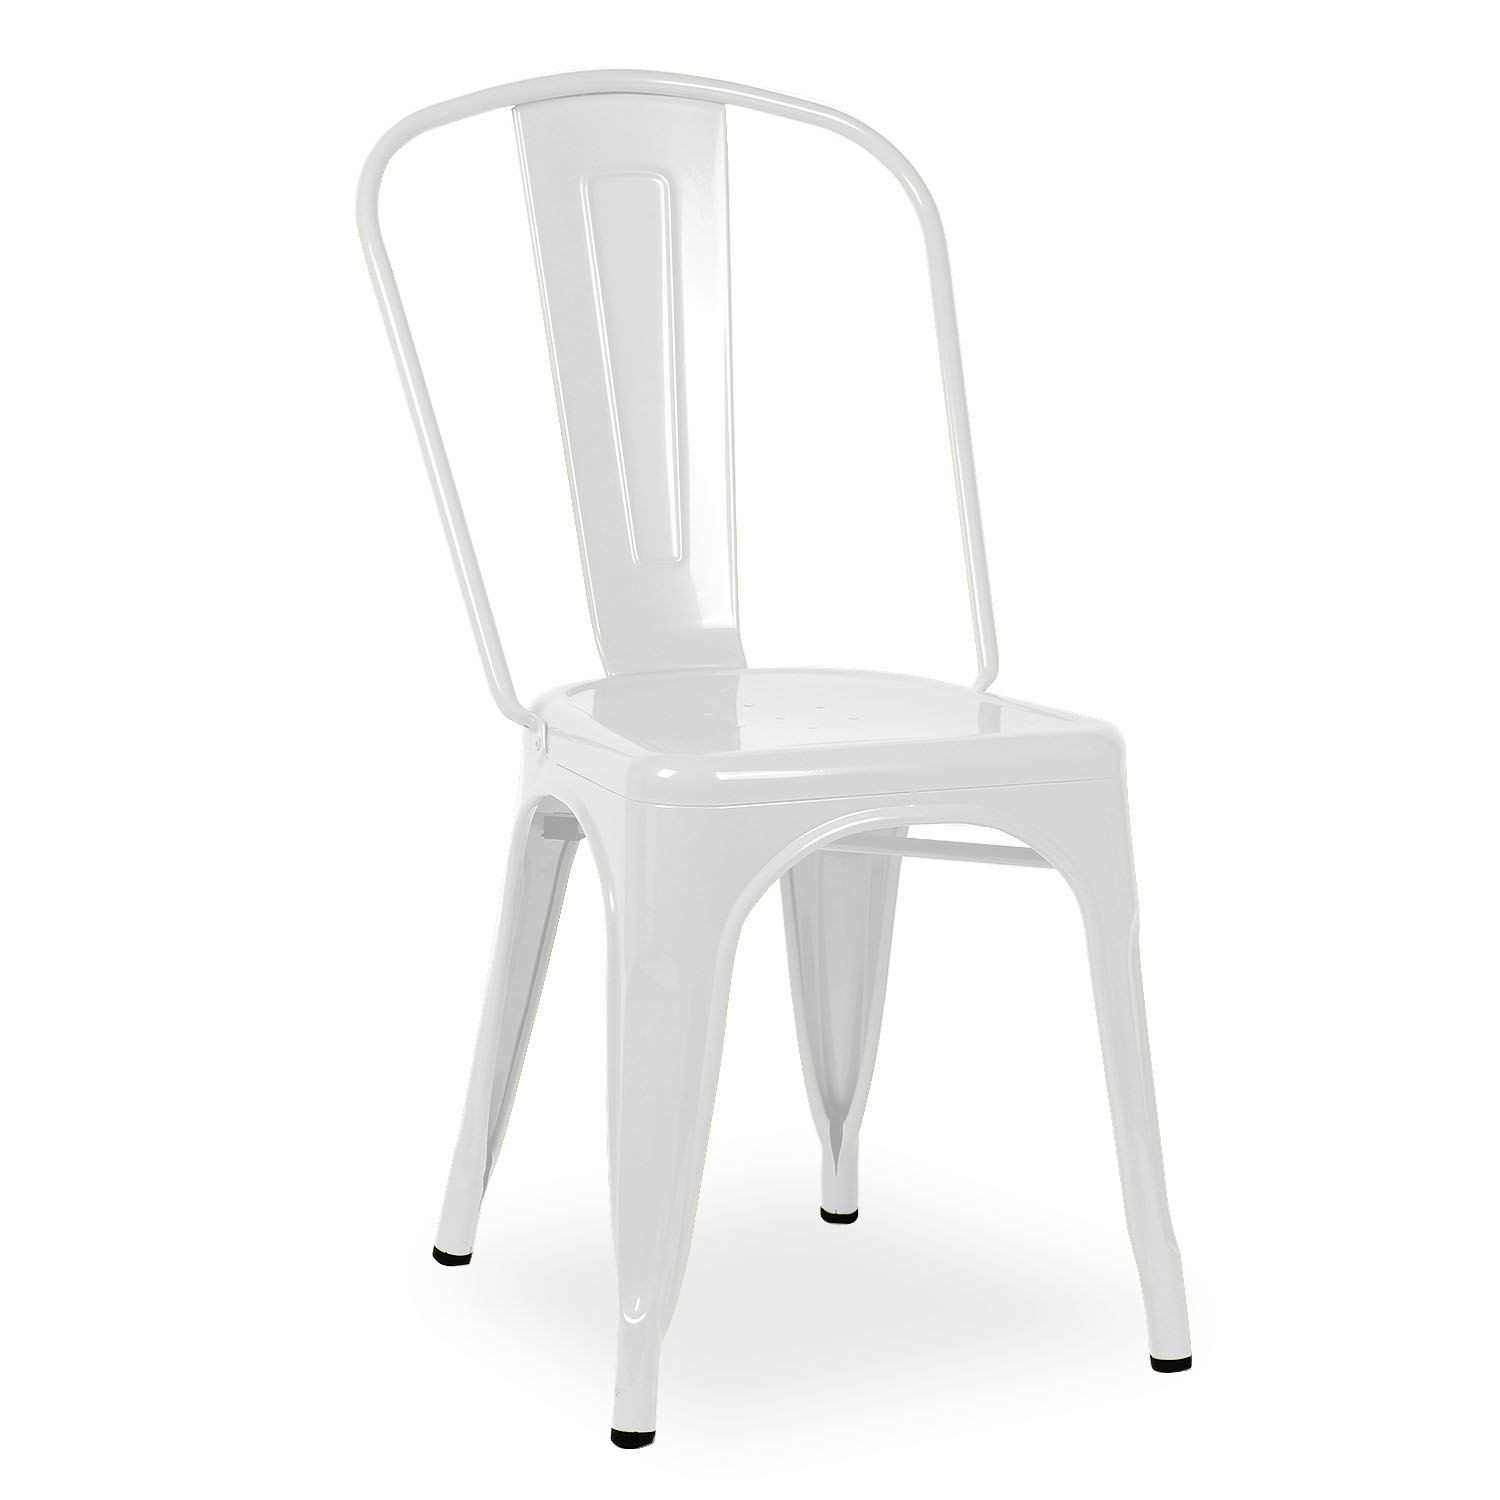 White Metal Chair Replica Xavier Pauchard Tolix Chair